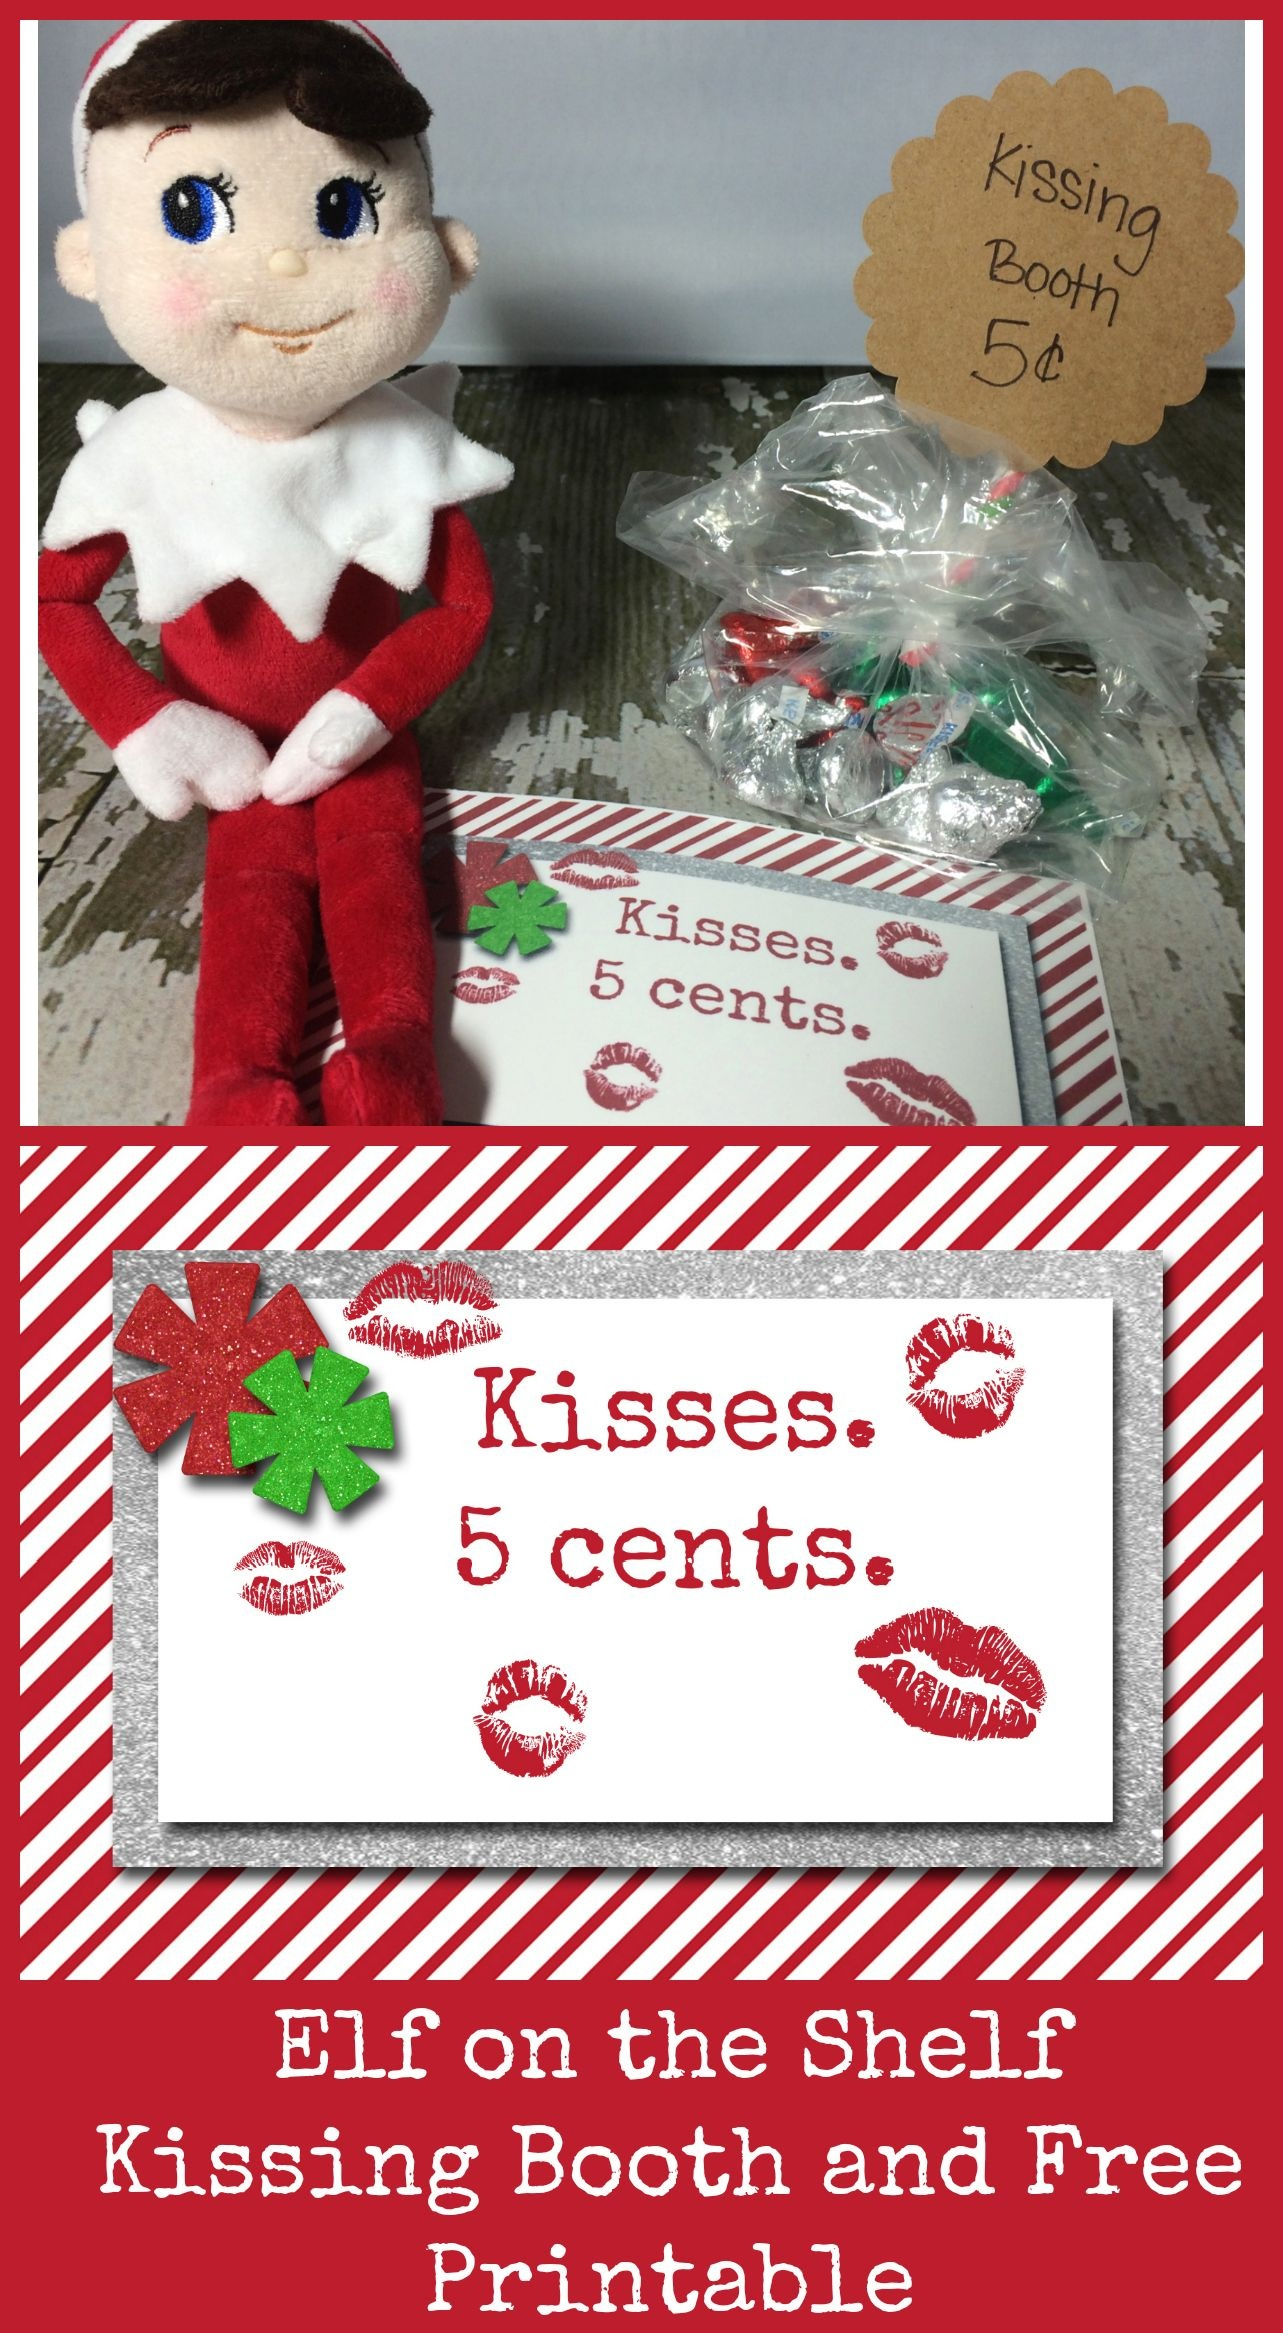 10 Easy Elf On The Shelf Ideas And A Daily Printable | Best Crafts - Elf On The Shelf Kissing Booth Free Printable